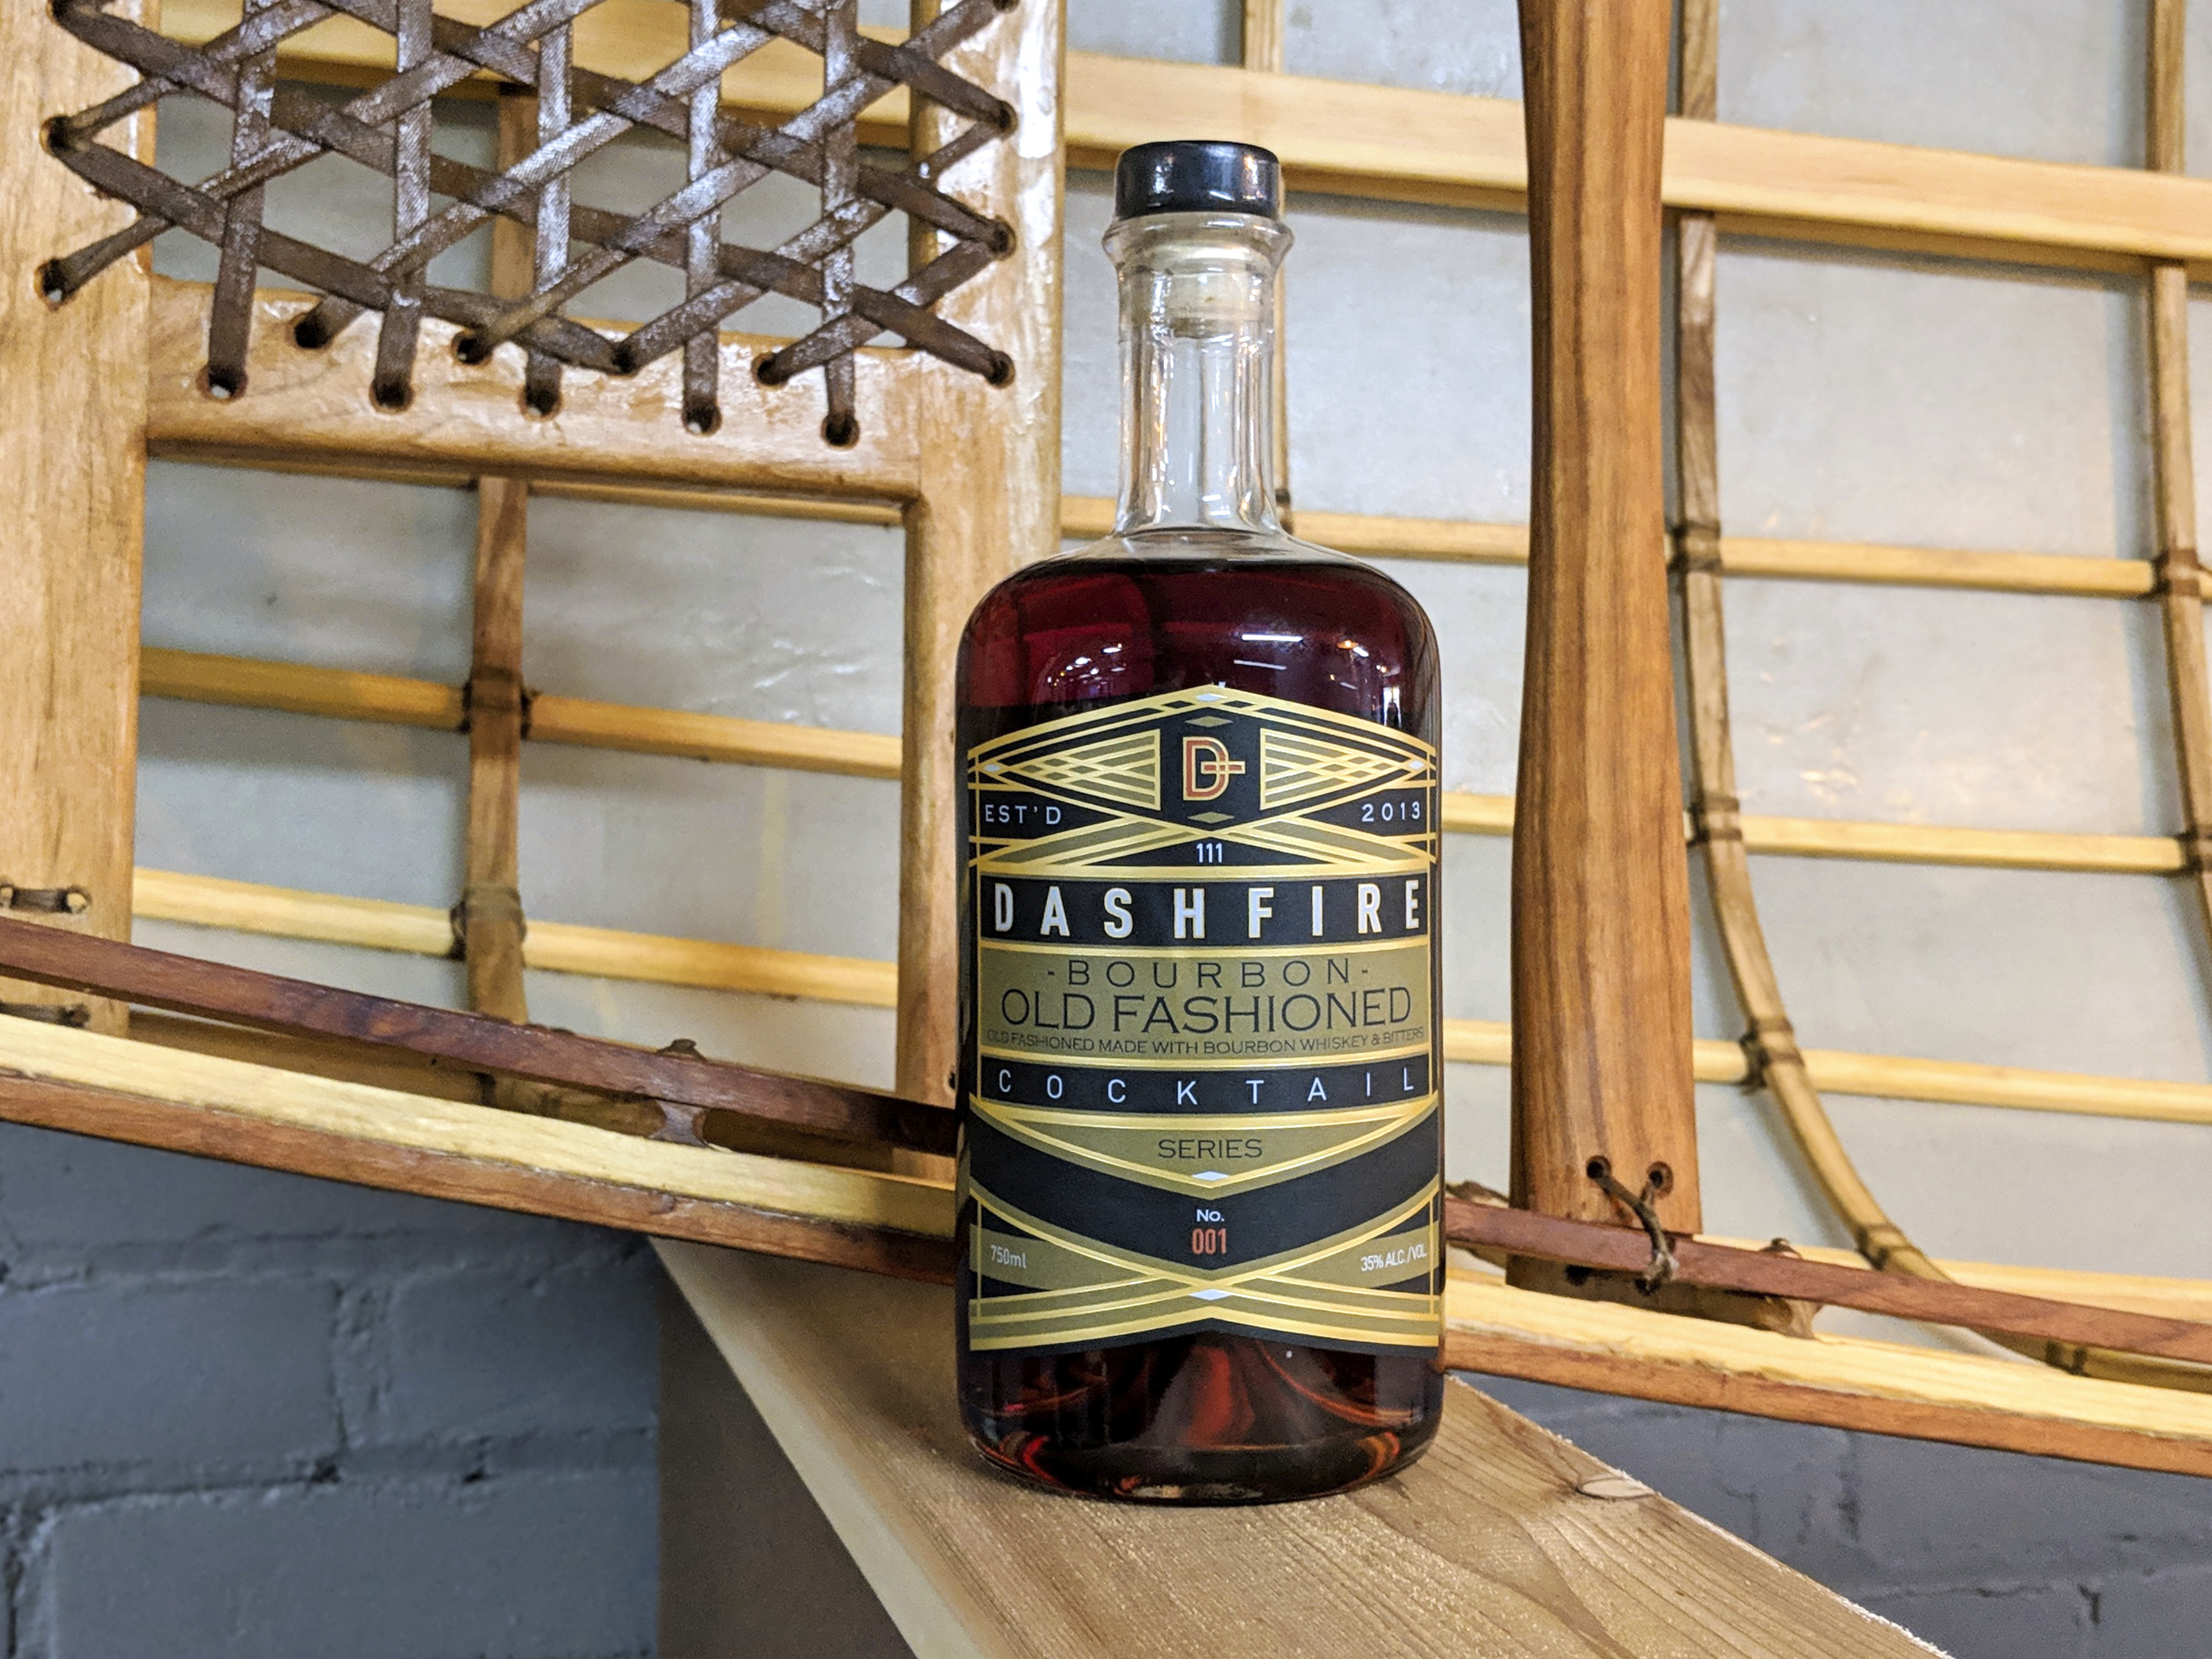 Dashfire's first bottled cocktail, a bourbon old fashioned, debuts this week // Photo by Ellen Burkhardt, The Growler